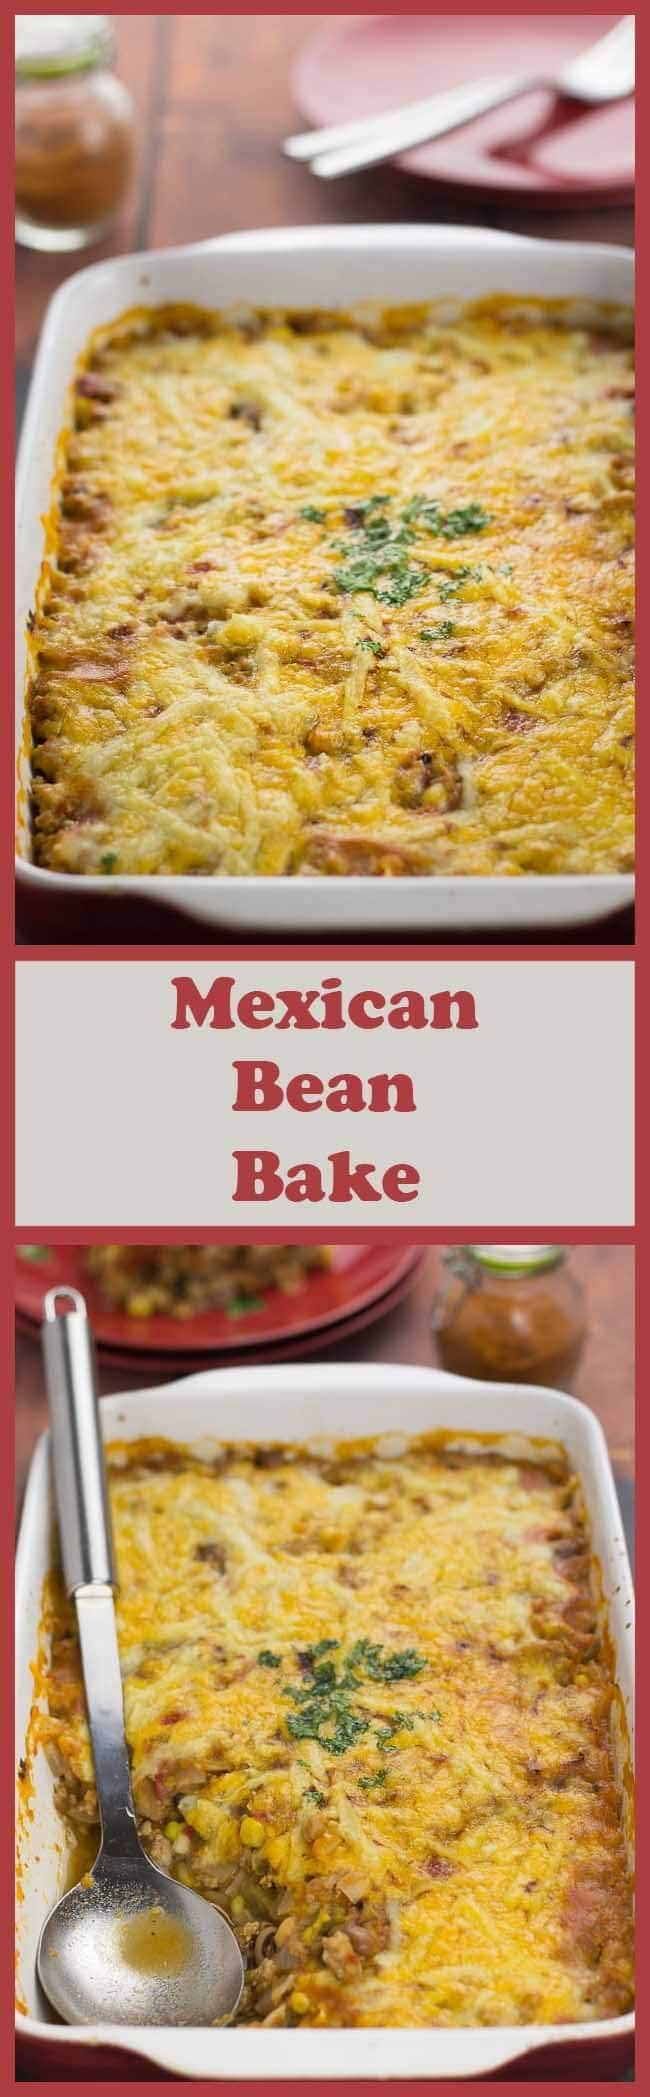 This Mexican bean bake is such a delicious quick healthy meal. It's stuffed full of protein, dietary fibre and essential vitamins and minerals. With a light tasty cheesy topping it's ready on the family table in less than one hour!